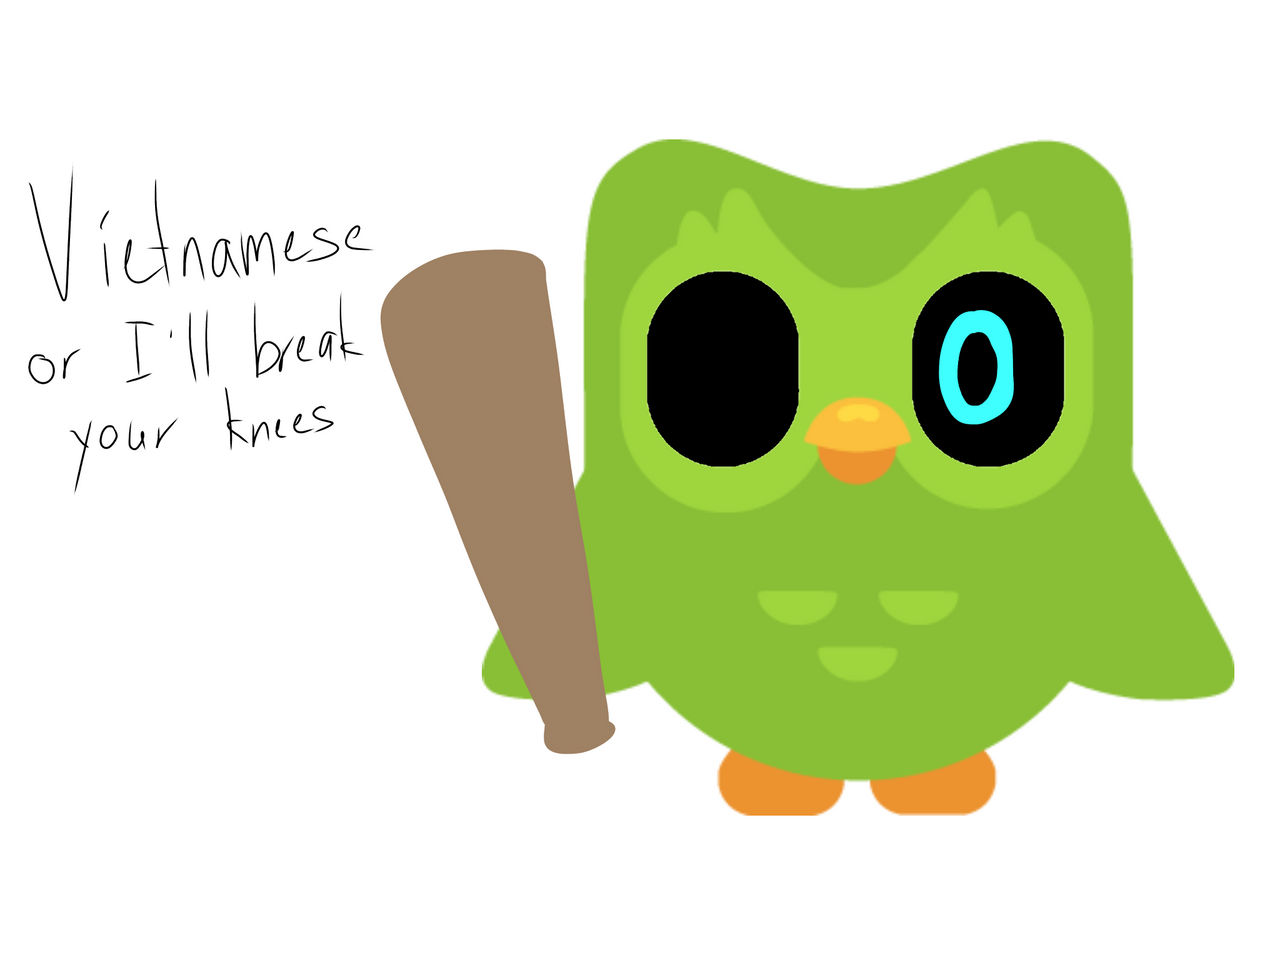 Duolingo by PlumdaFruit on DeviantArt